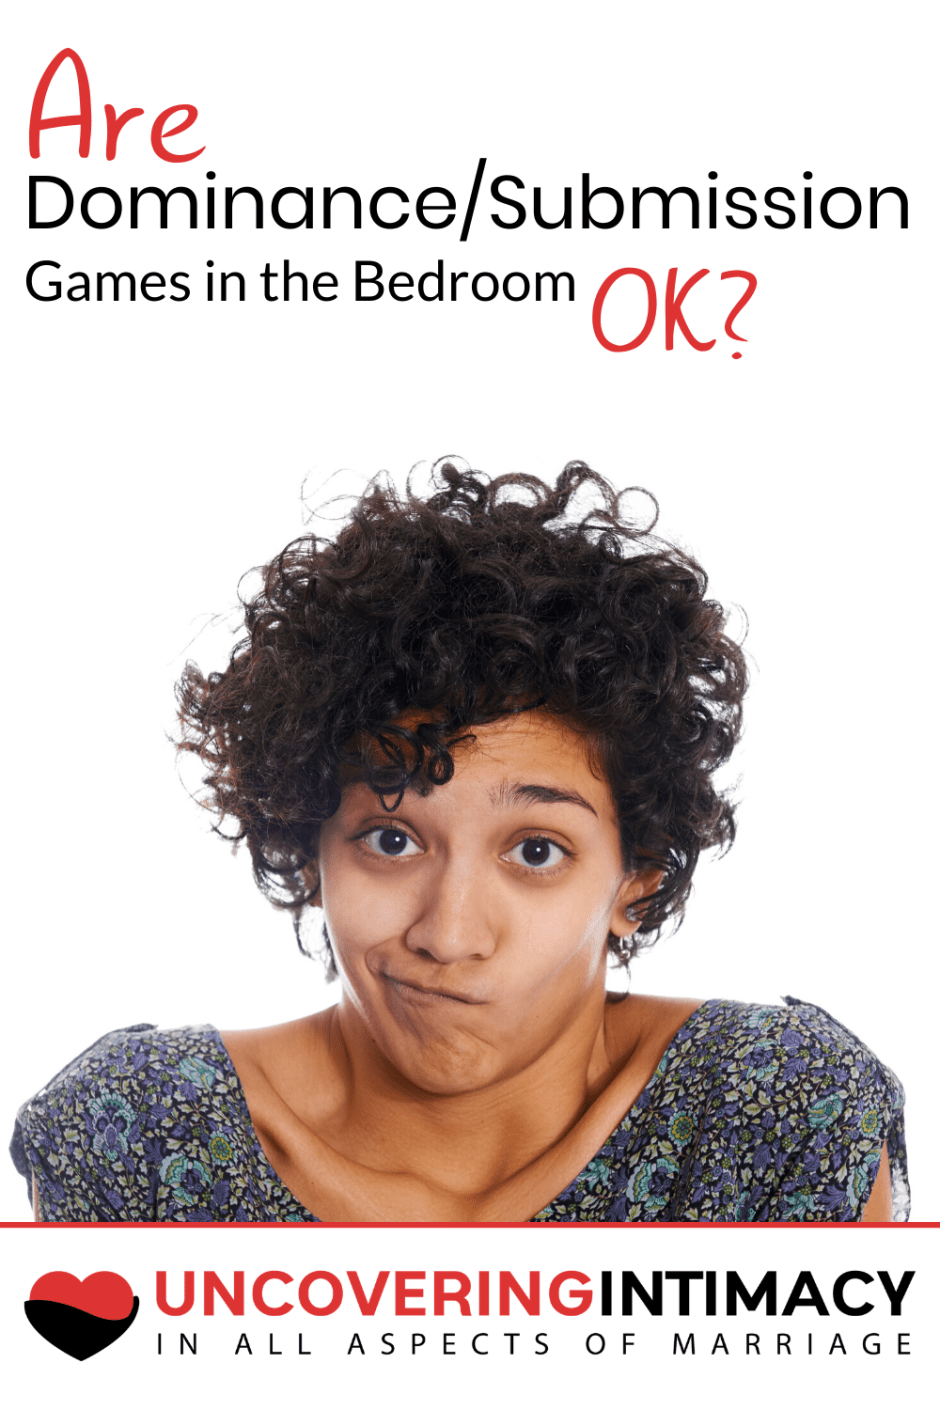 Are dominance / submission games in the bedroom okay?